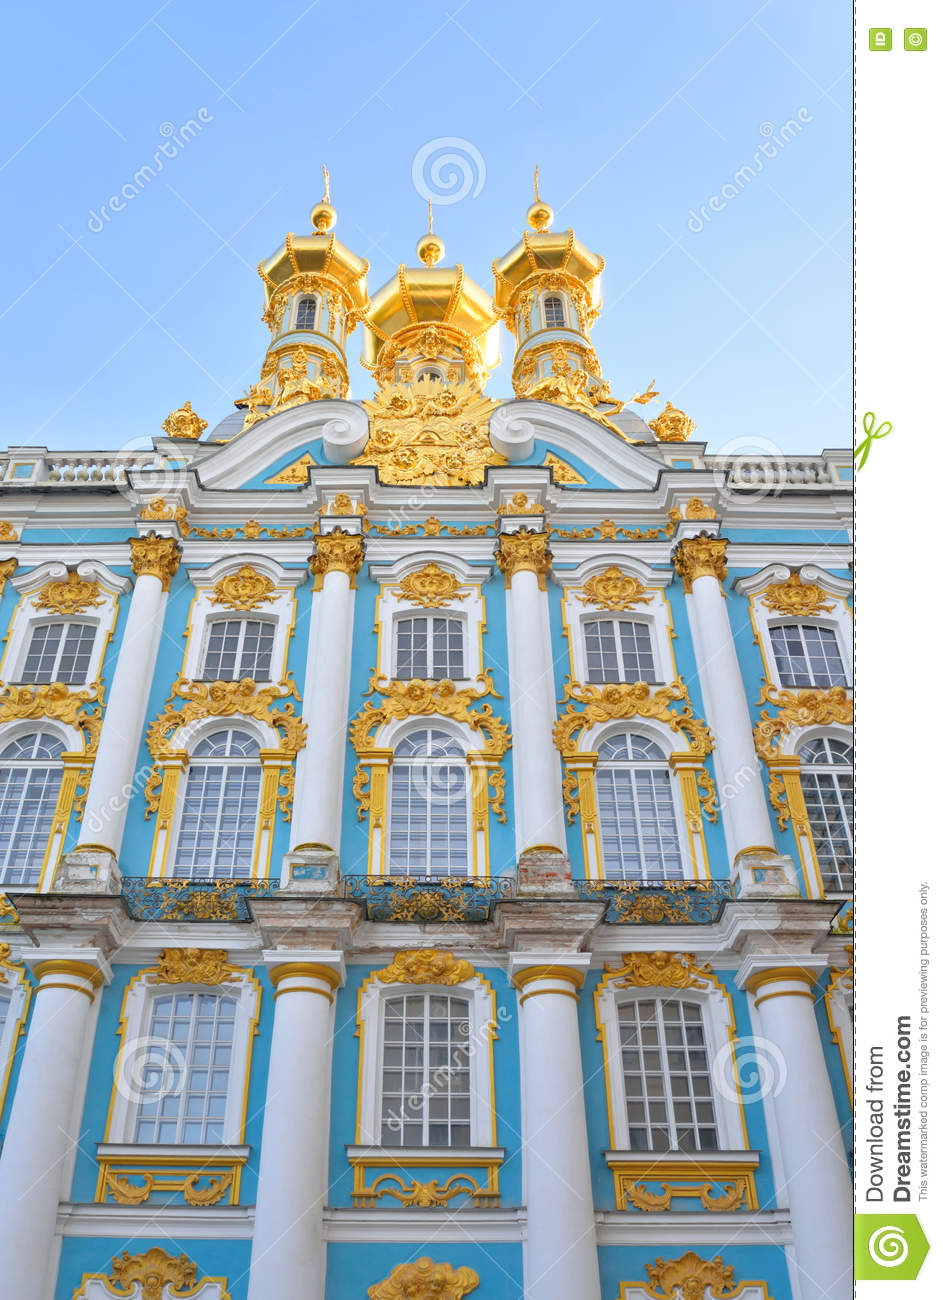 Golden Cupolas Of Catherine Palace Church. Stock Photo.